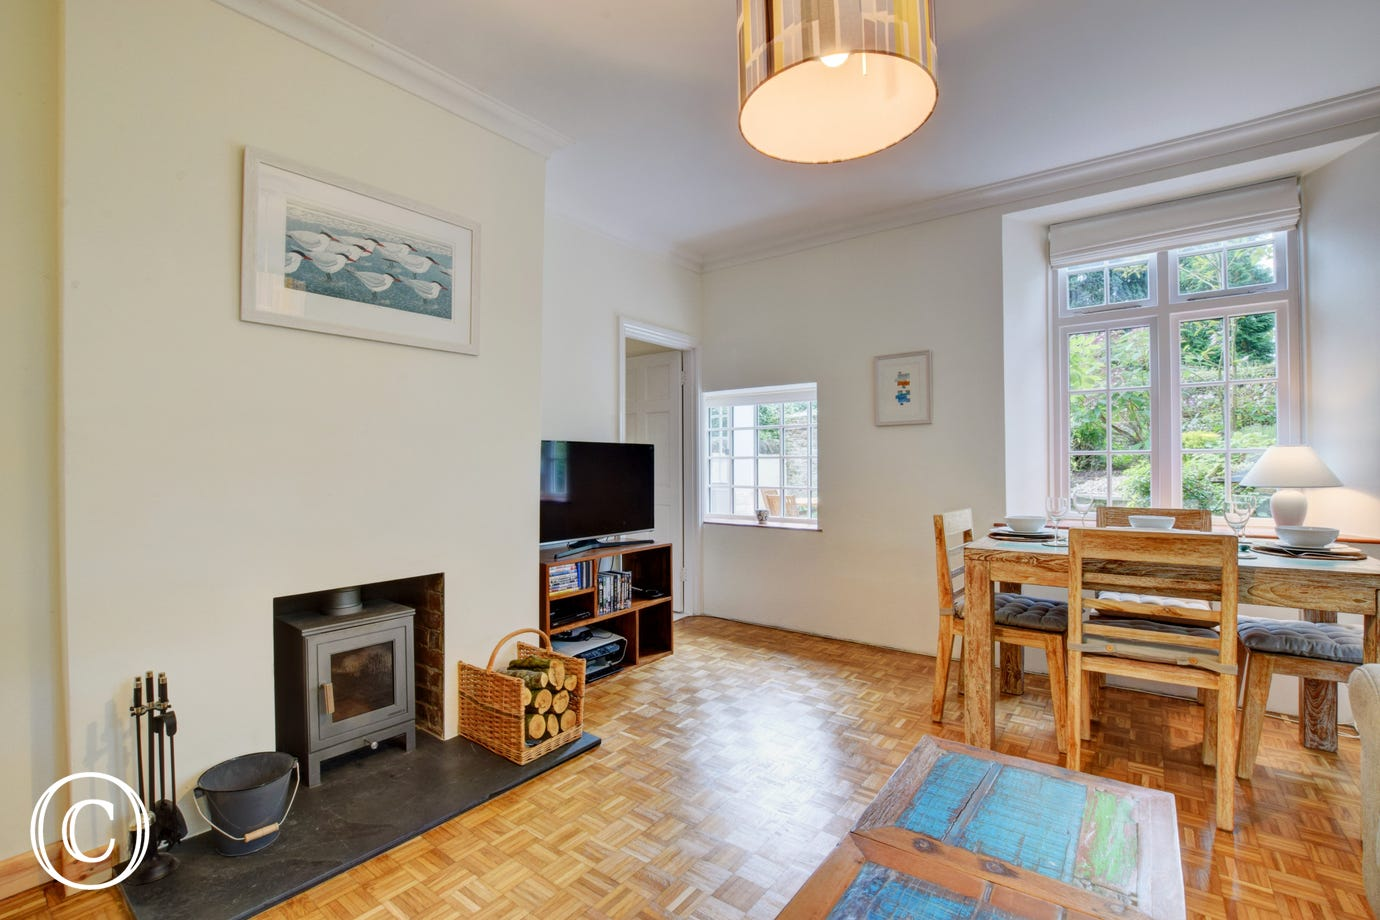 Wild Rose Cottage, Asprington - Sitting room - view 3